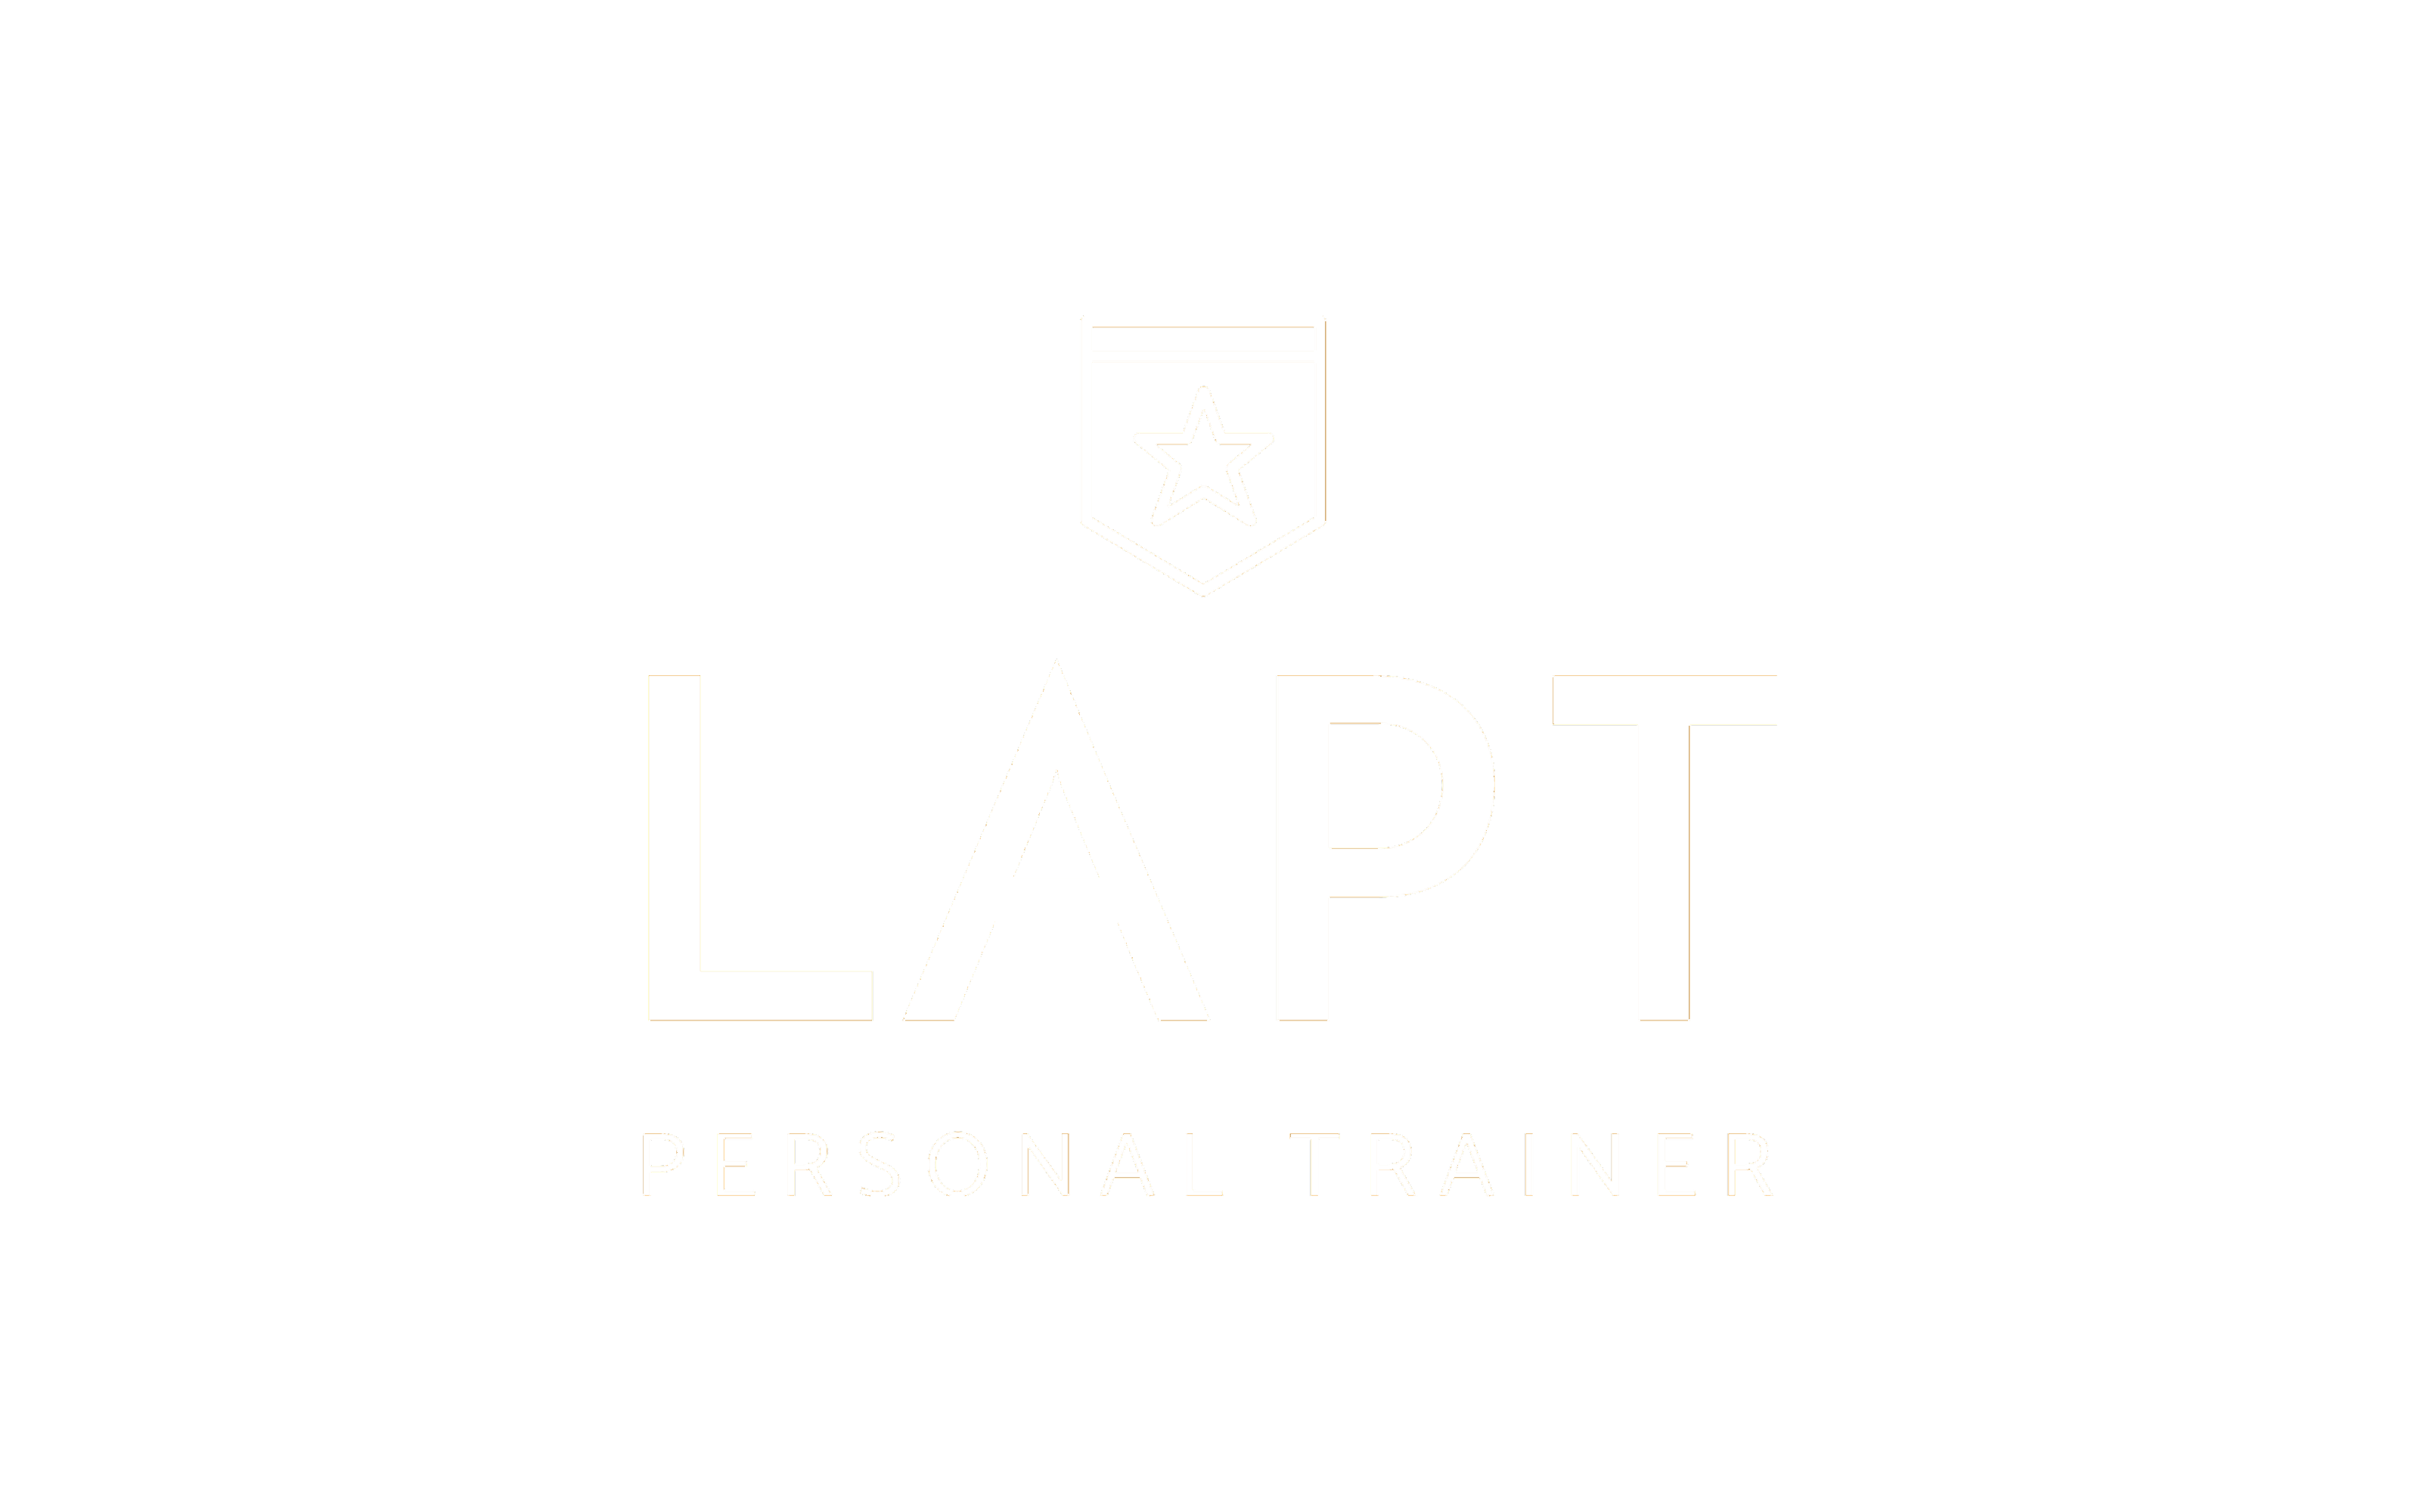 LAPT Personal Trainer color_logo_transparent whiteout